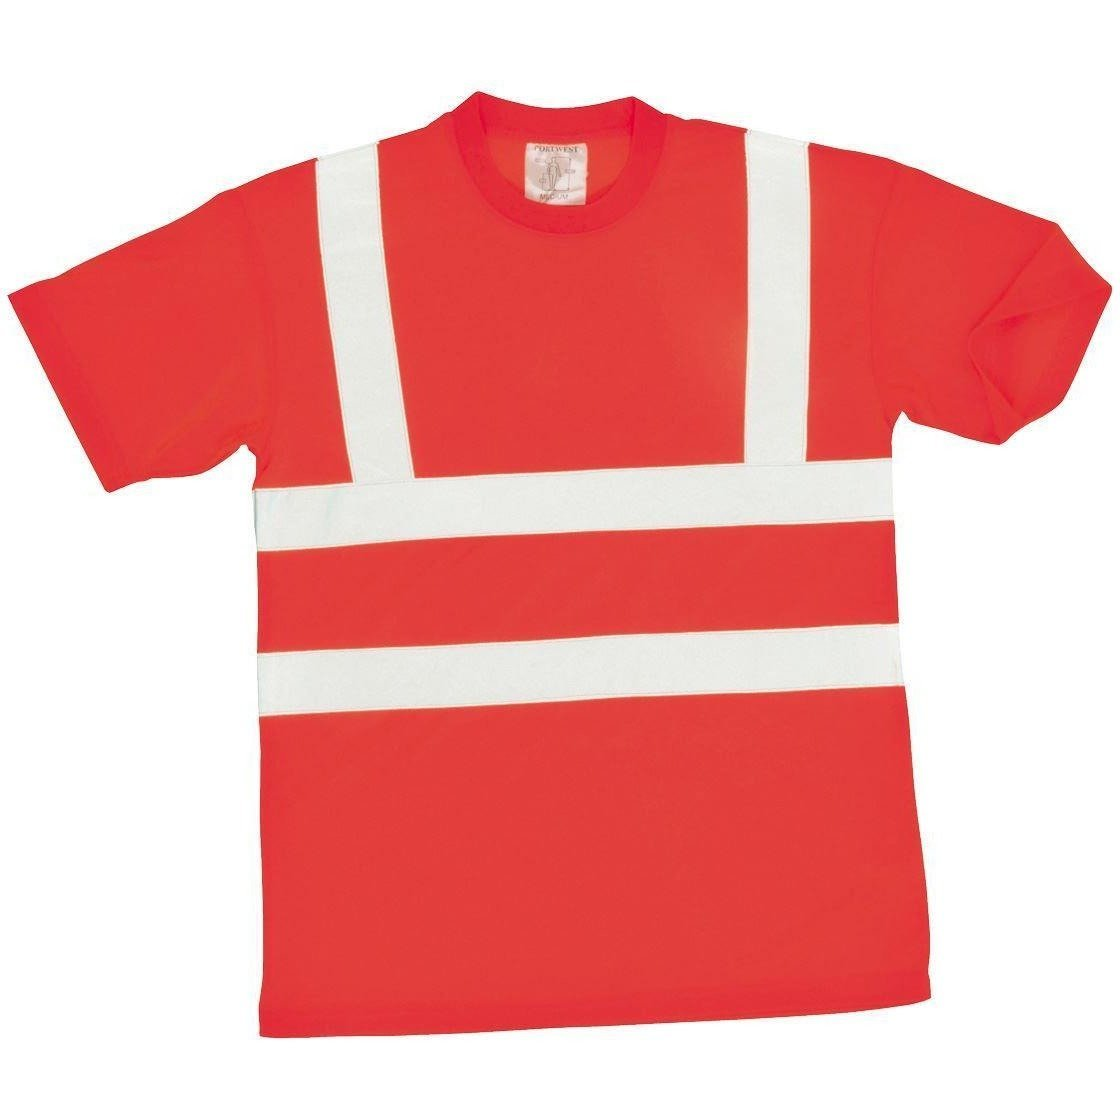 Portwest Hi-Vis T-Shirt S478 - reid outdoors